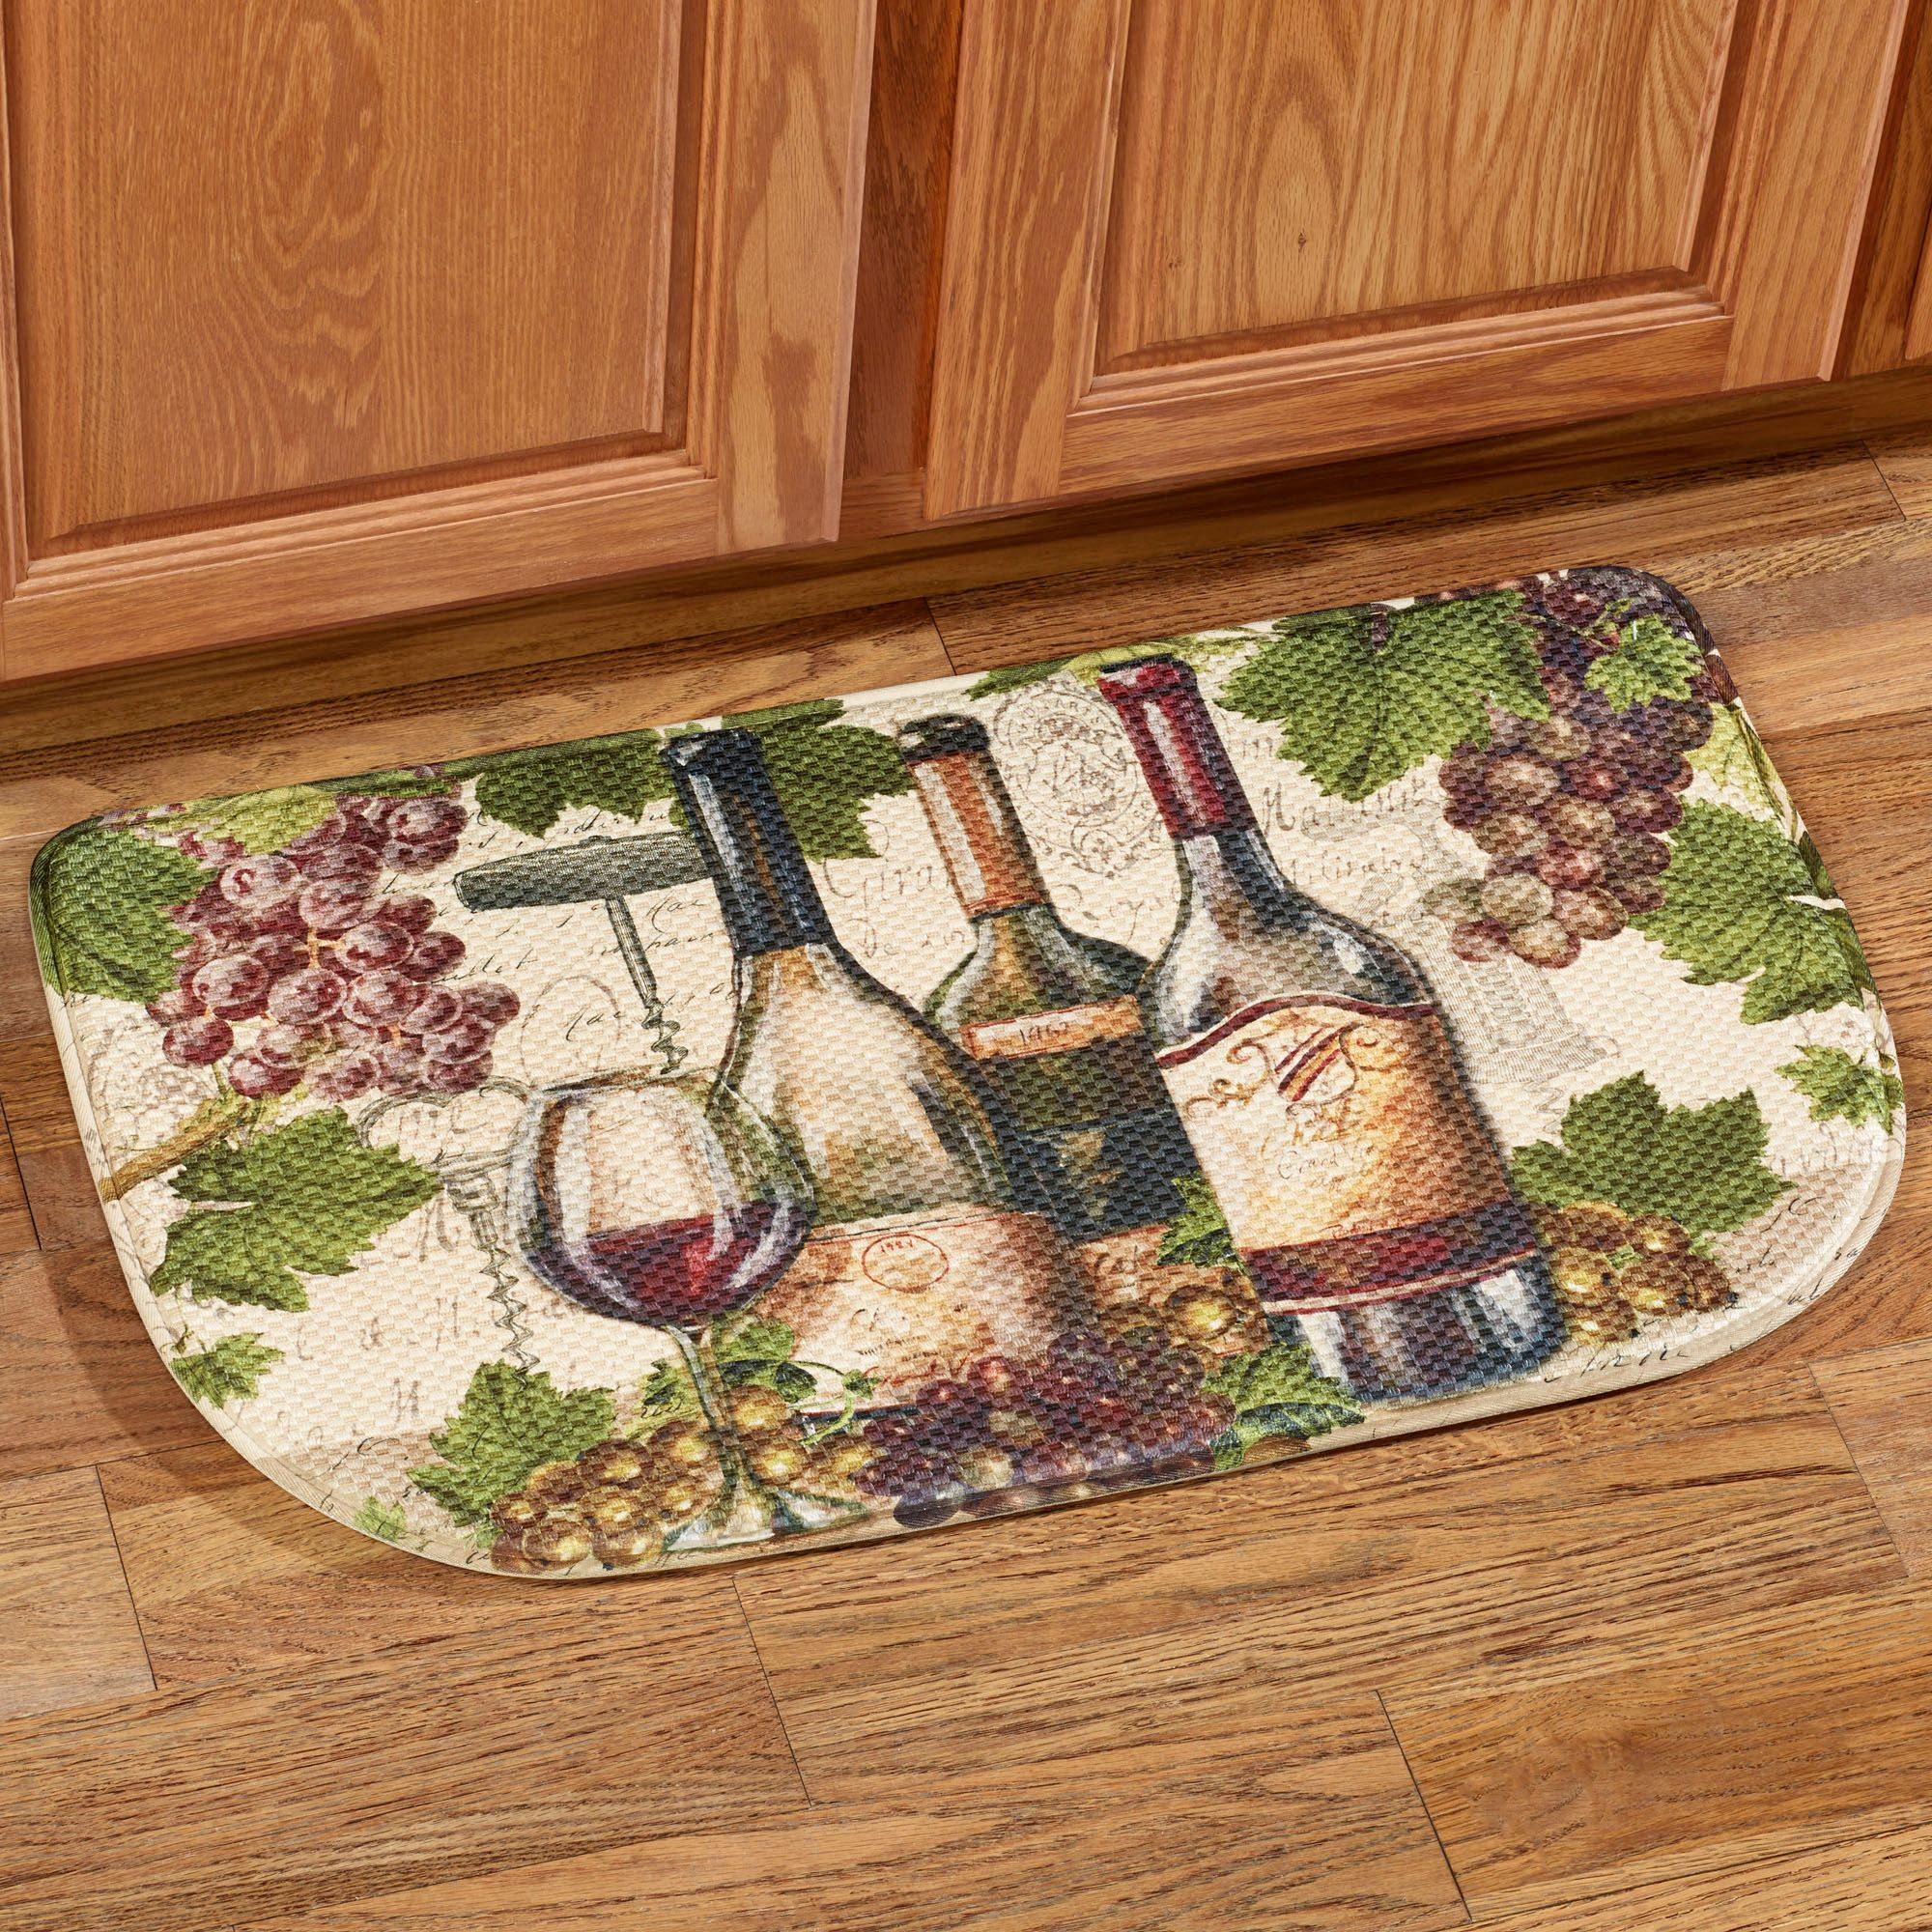 with runners foam mat kitchen mats floor memory pictures inspirations fascinating inspirational rug runner new pics